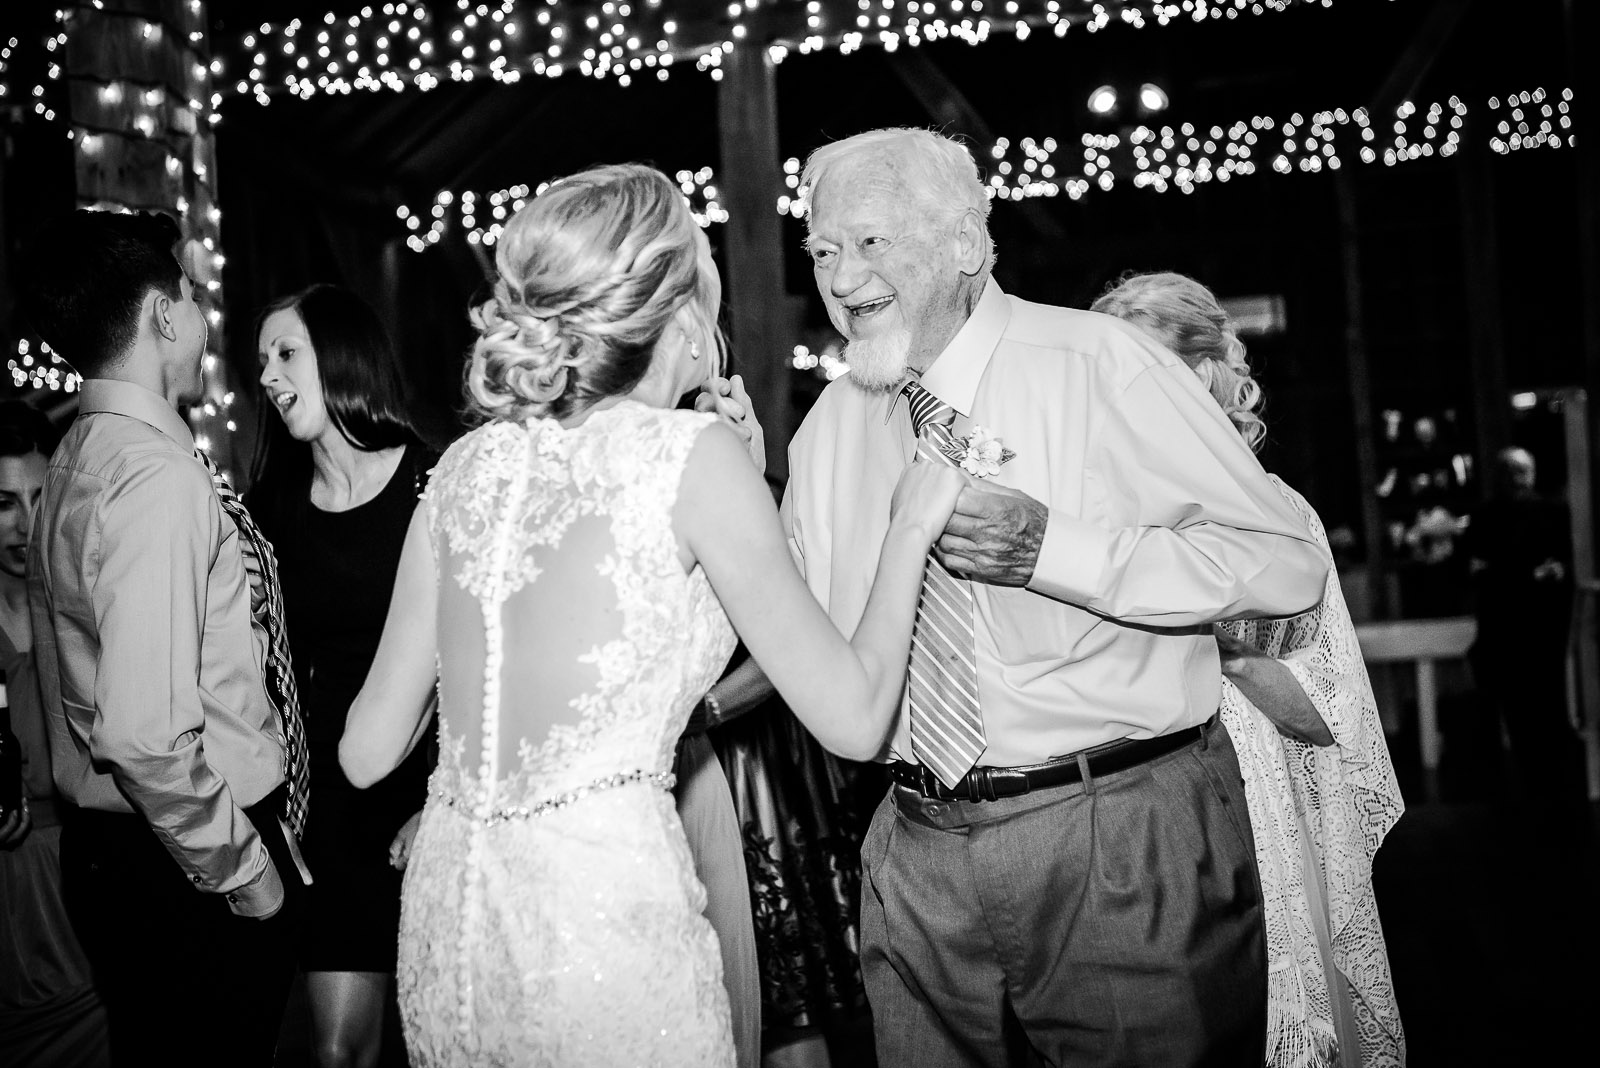 Eric_and_Christy_Photography_Blog_Wedding_Kelly_Matt-77